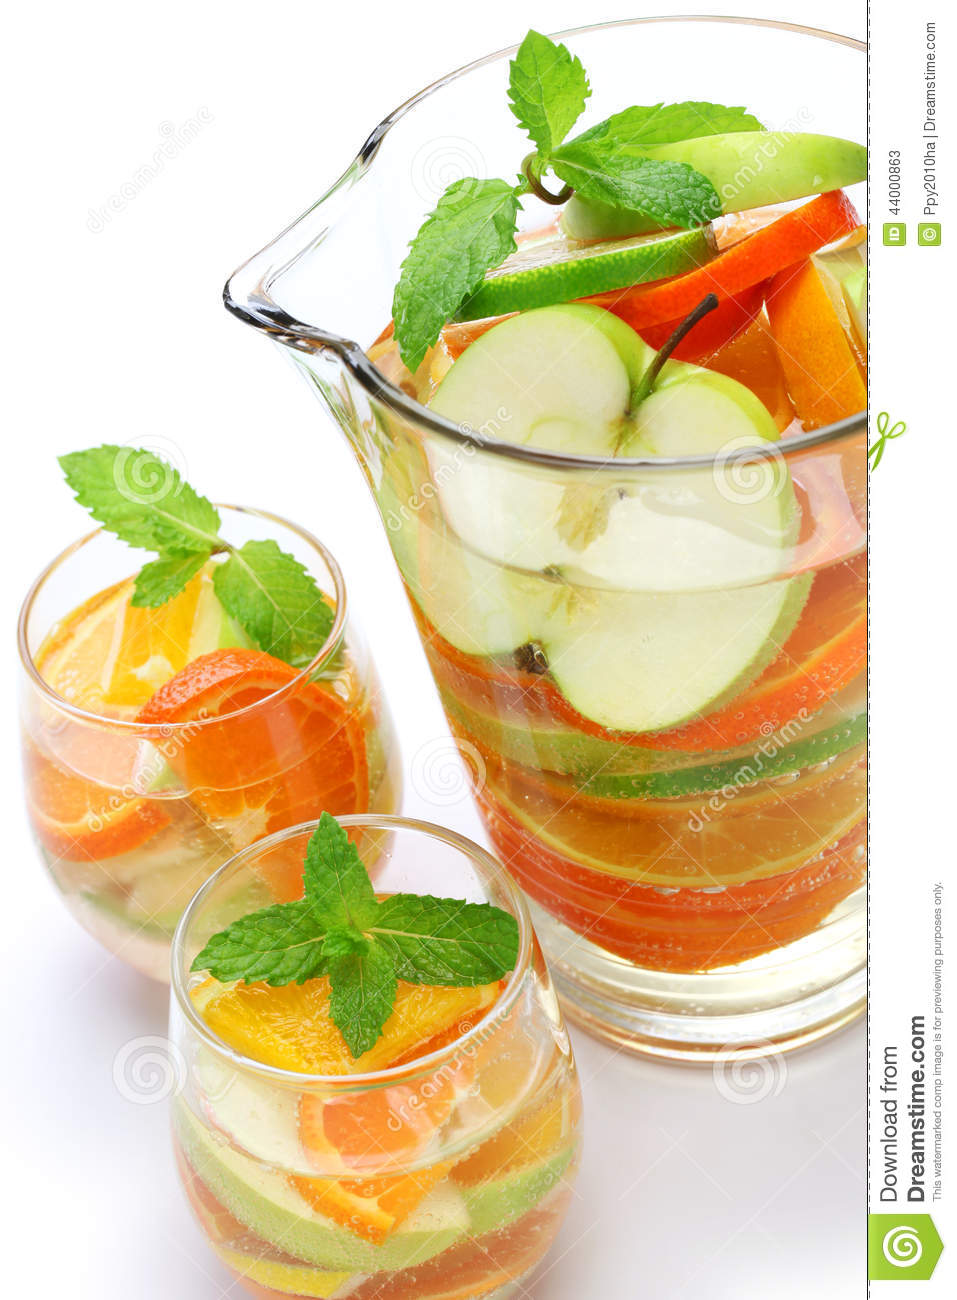 Sangria Blanca, White Sangria Stock Photo - Image: 44000863